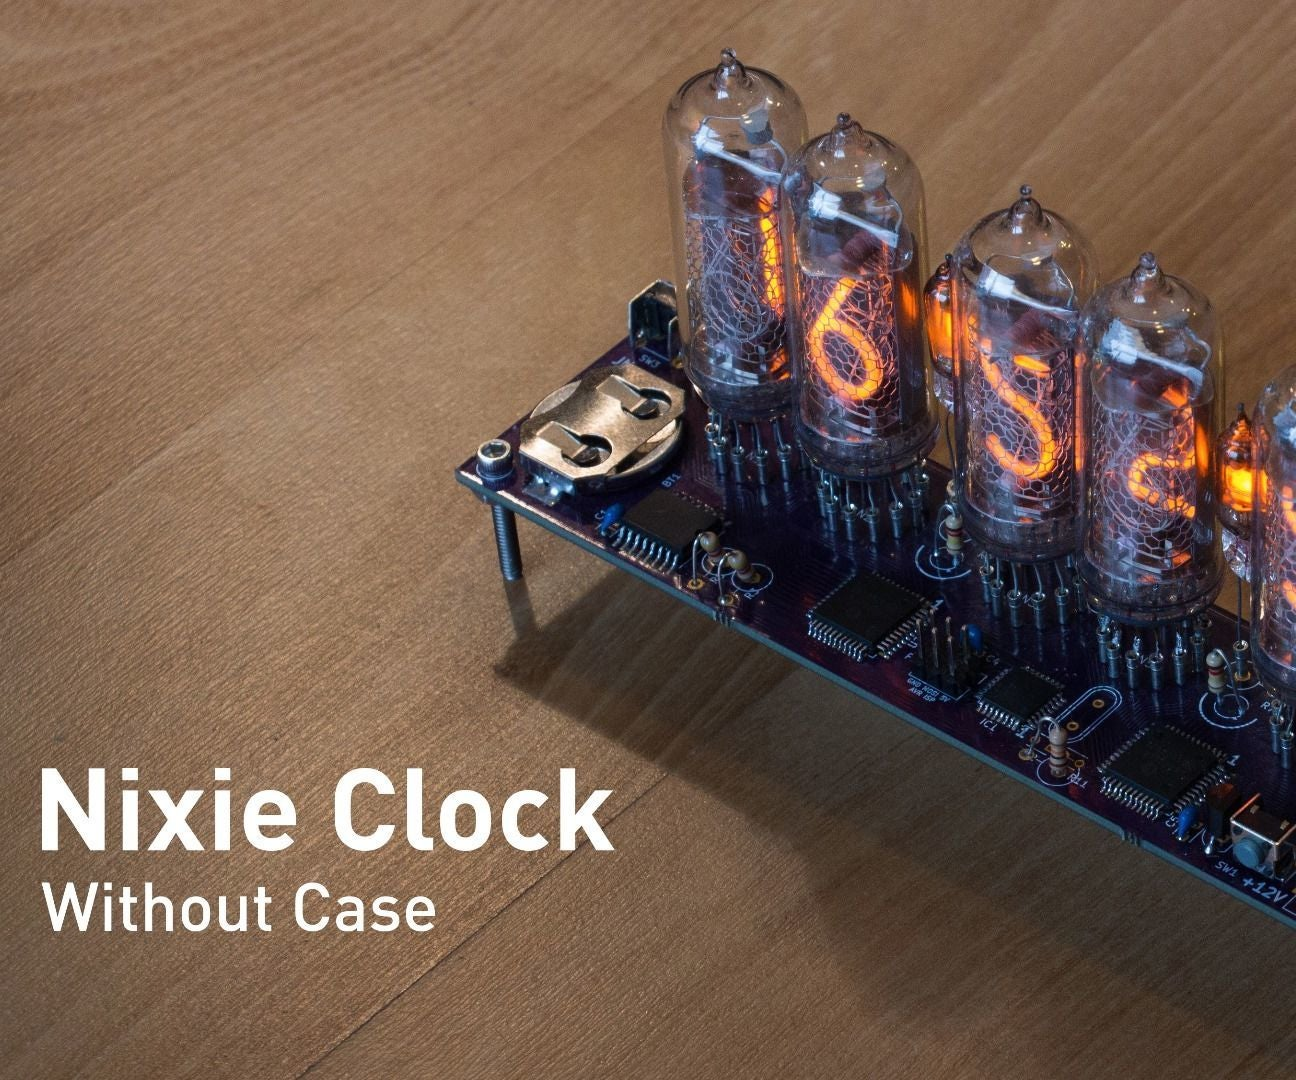 Smd Nixie Clock 9 Steps With Pictures Schematic Of My 6 Digit Here Are Some Photos